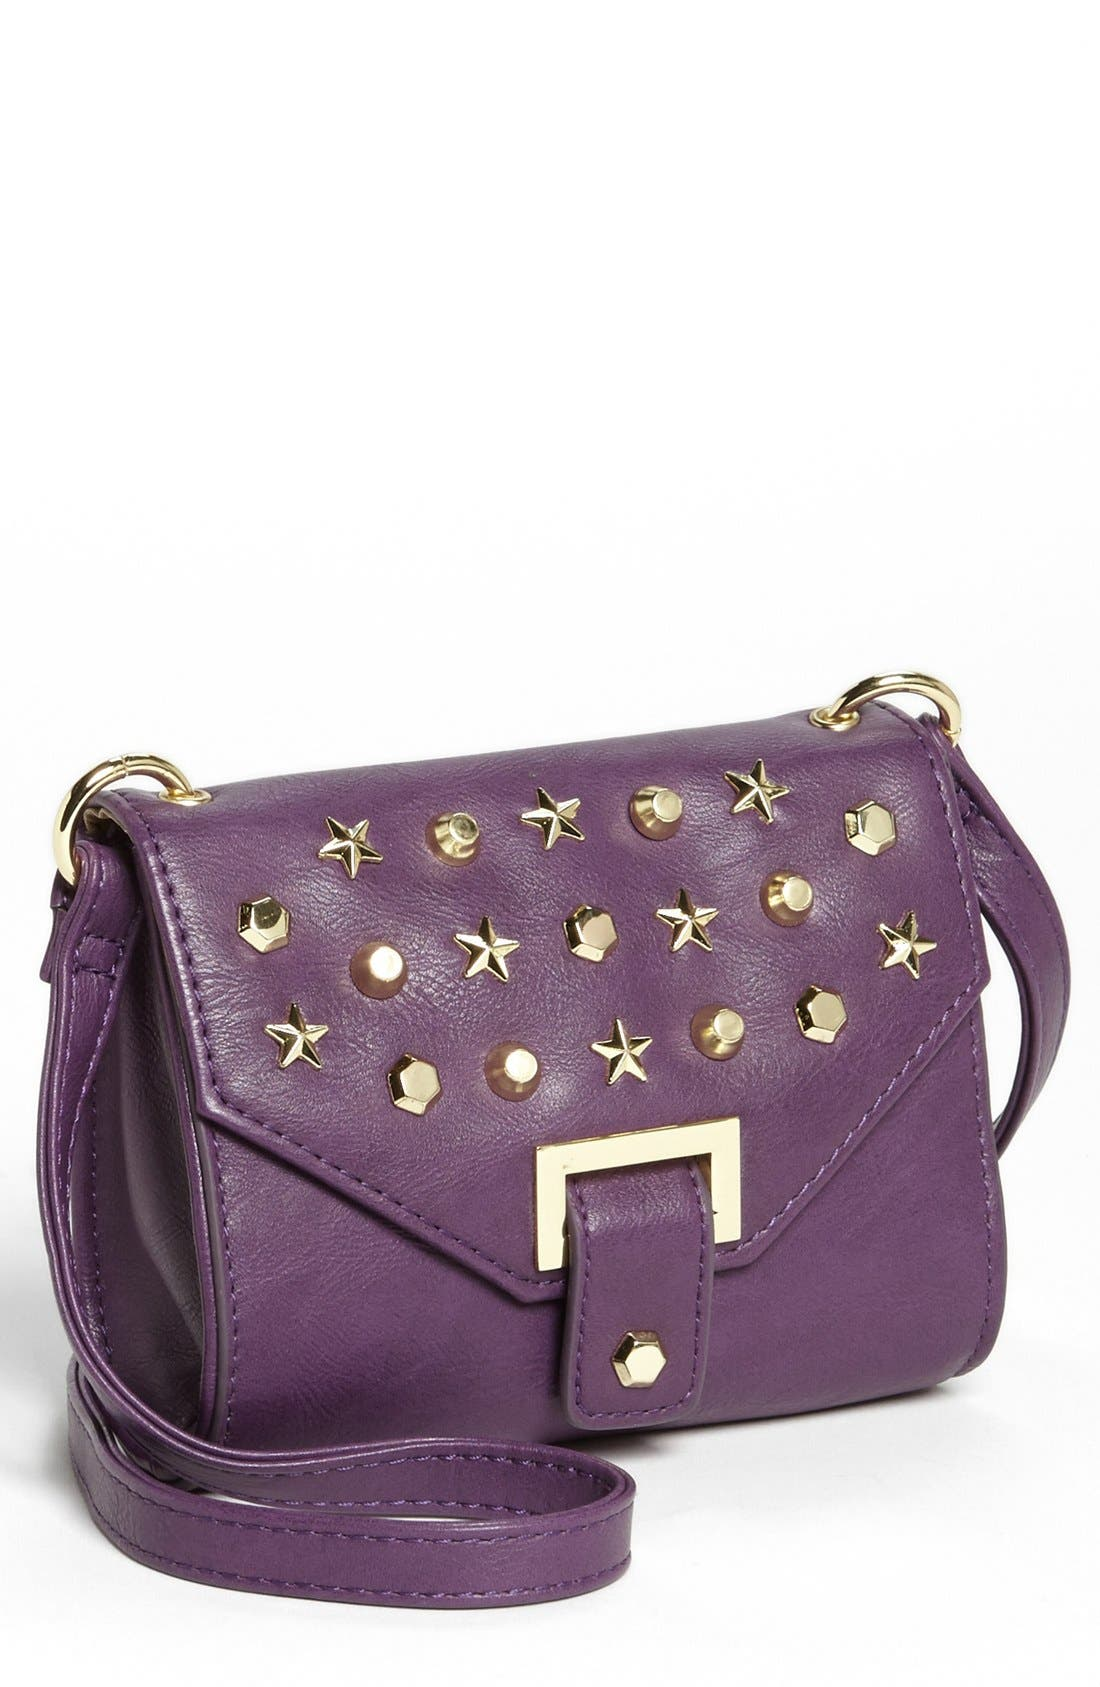 Alternate Image 1 Selected - Steve Madden Faux Leather Mini Crossbody Bag